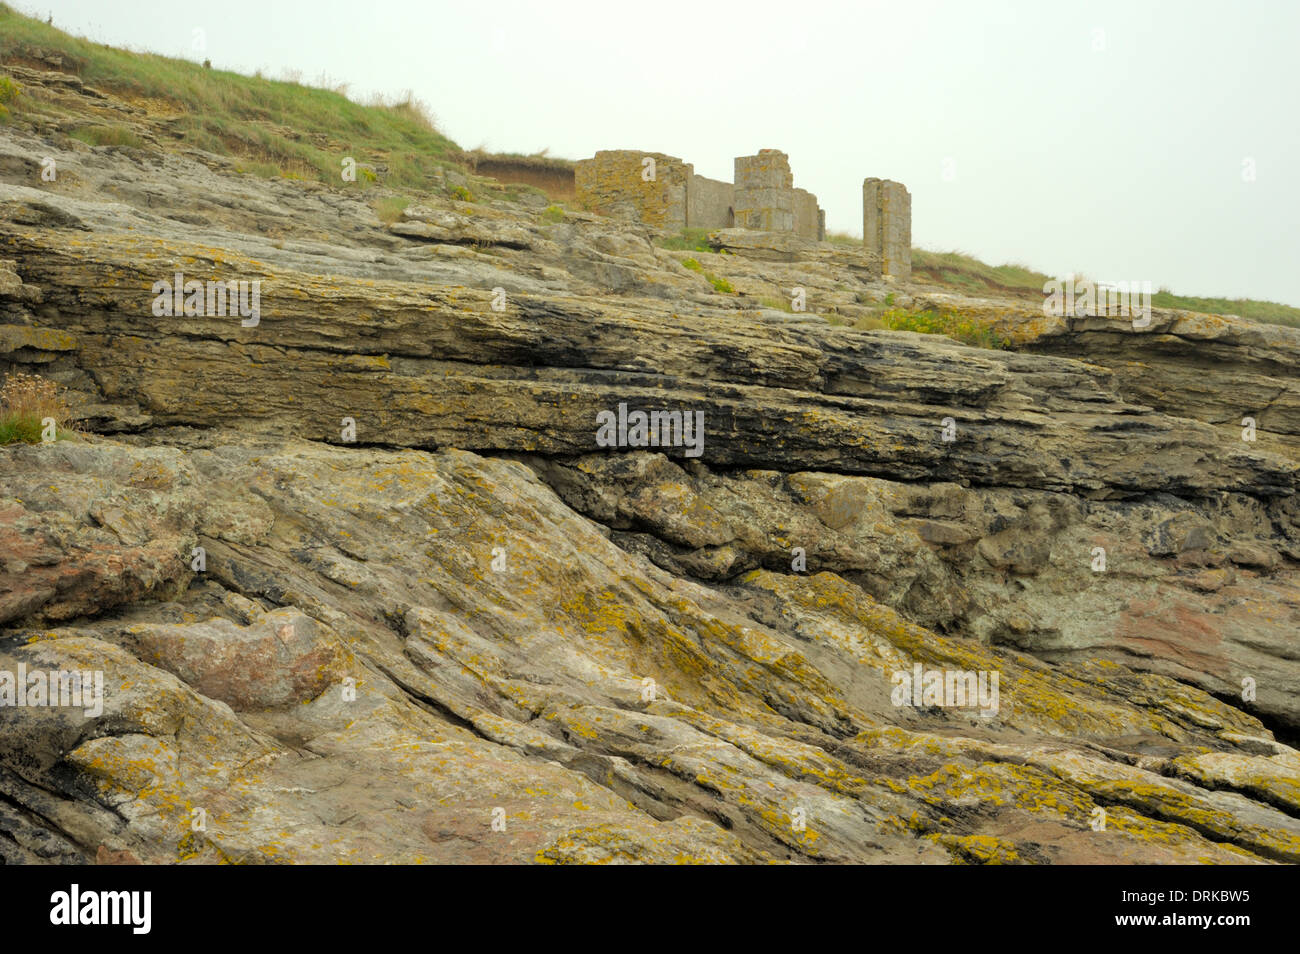 A Geological Unconformity - Stock Image